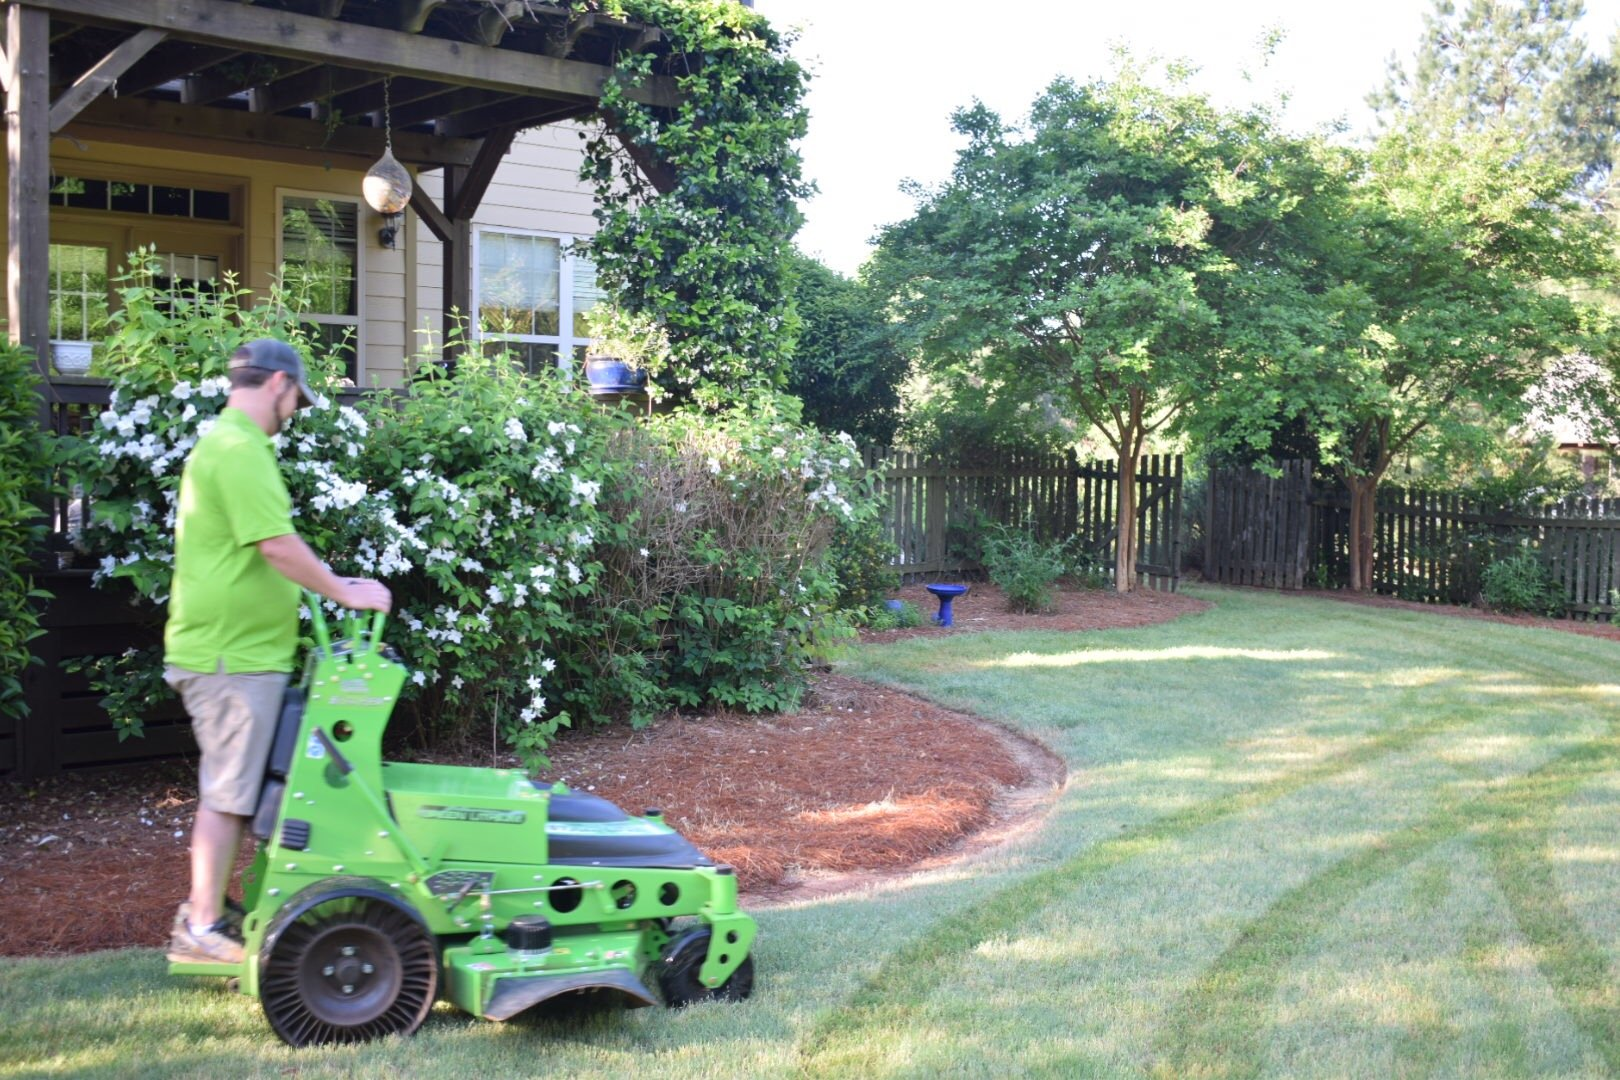 Man Driving Quiet Electric Mower Around Garden Bed On Manicured Lawn